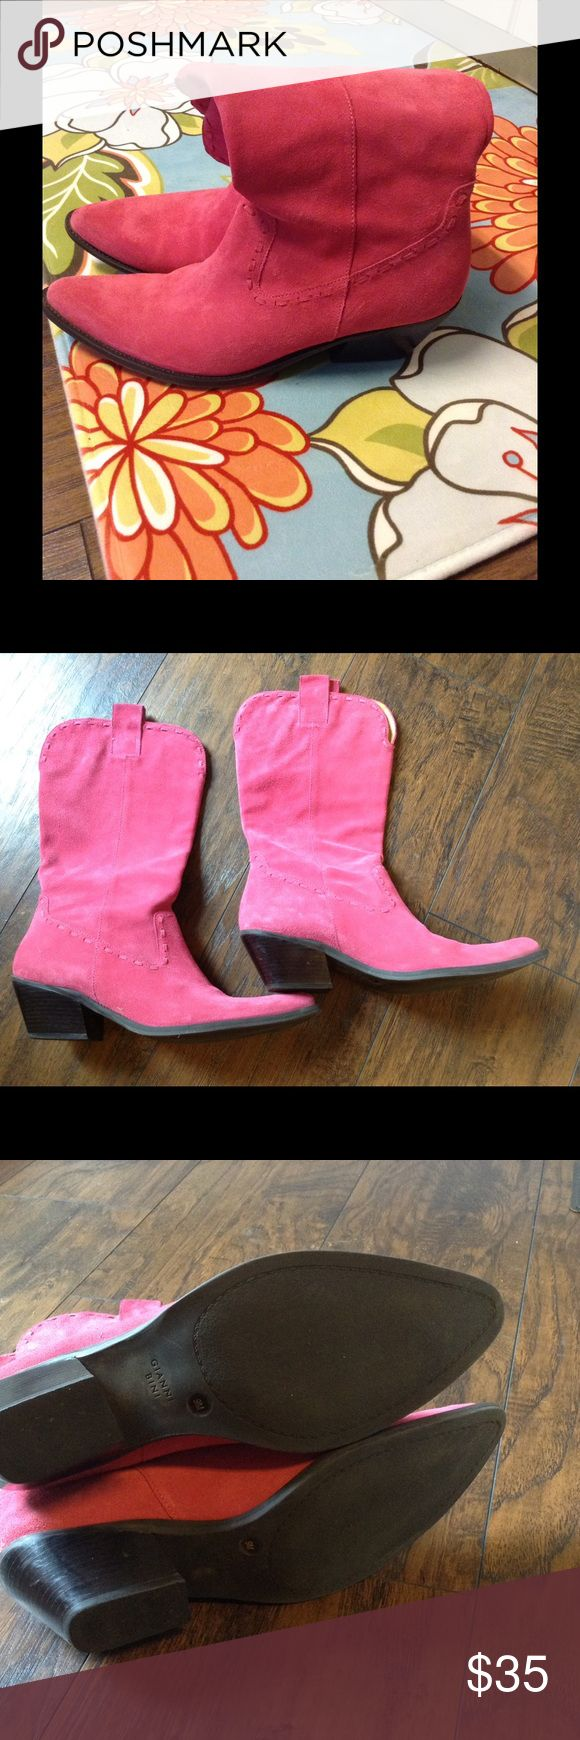 Gianni Bini Pink Suede Cowgirl Boots Size 9 Worn once. Has some darkening around the very top from storing. Clean toe box. Bottoms show little to no wear. Cute detail. Suede. Super cute for summer dresses. Preowned so please expect the described wear as noted. Gianni Bini Shoes Heeled Boots